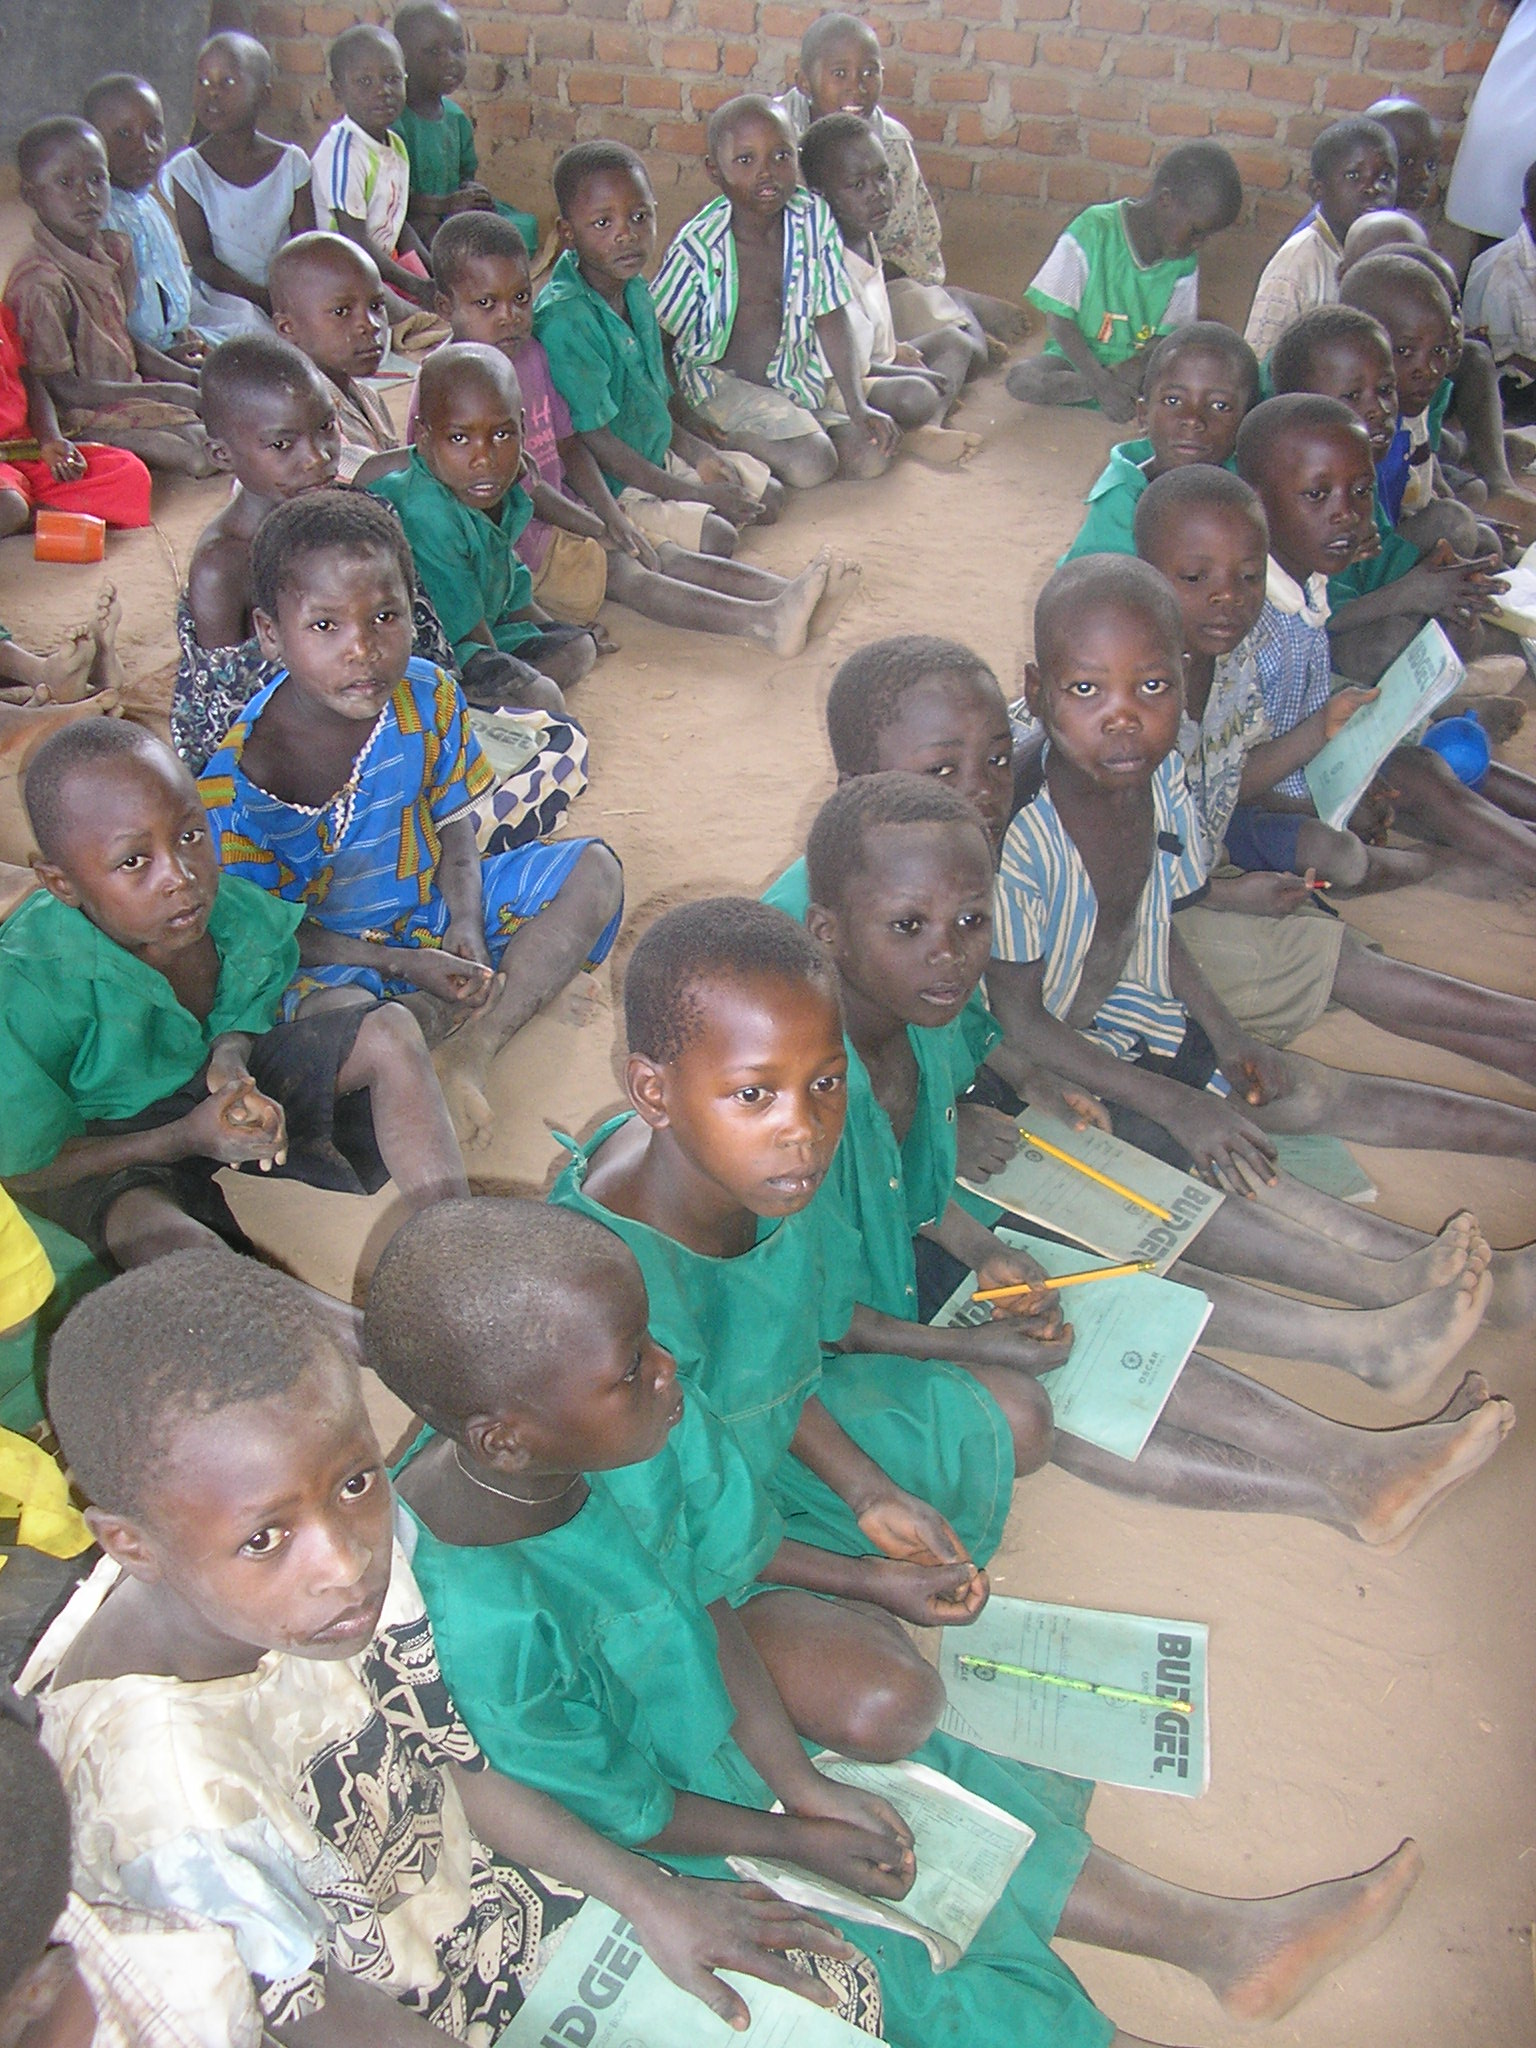 Due to lack of desks, children are forced to sit on dirt floo, or pathetically, a brick!